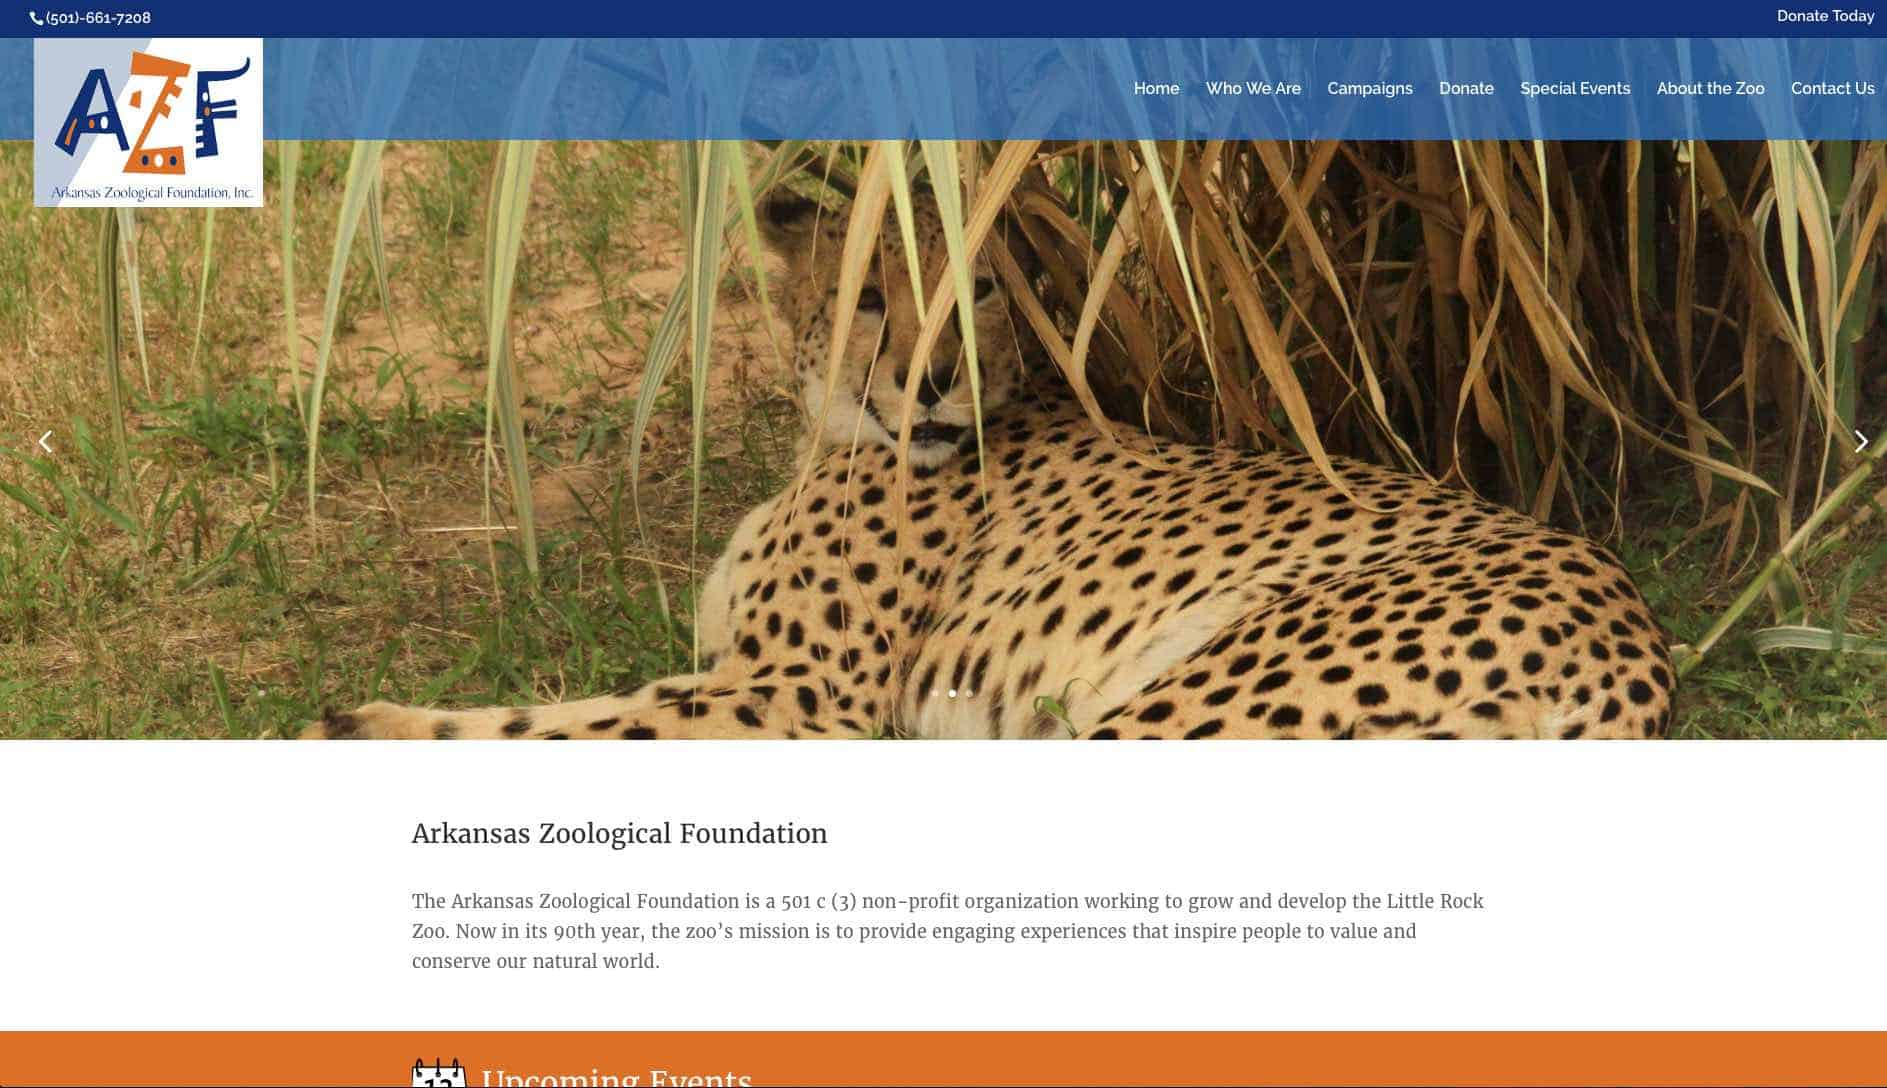 Arkansas Zoo Foundation